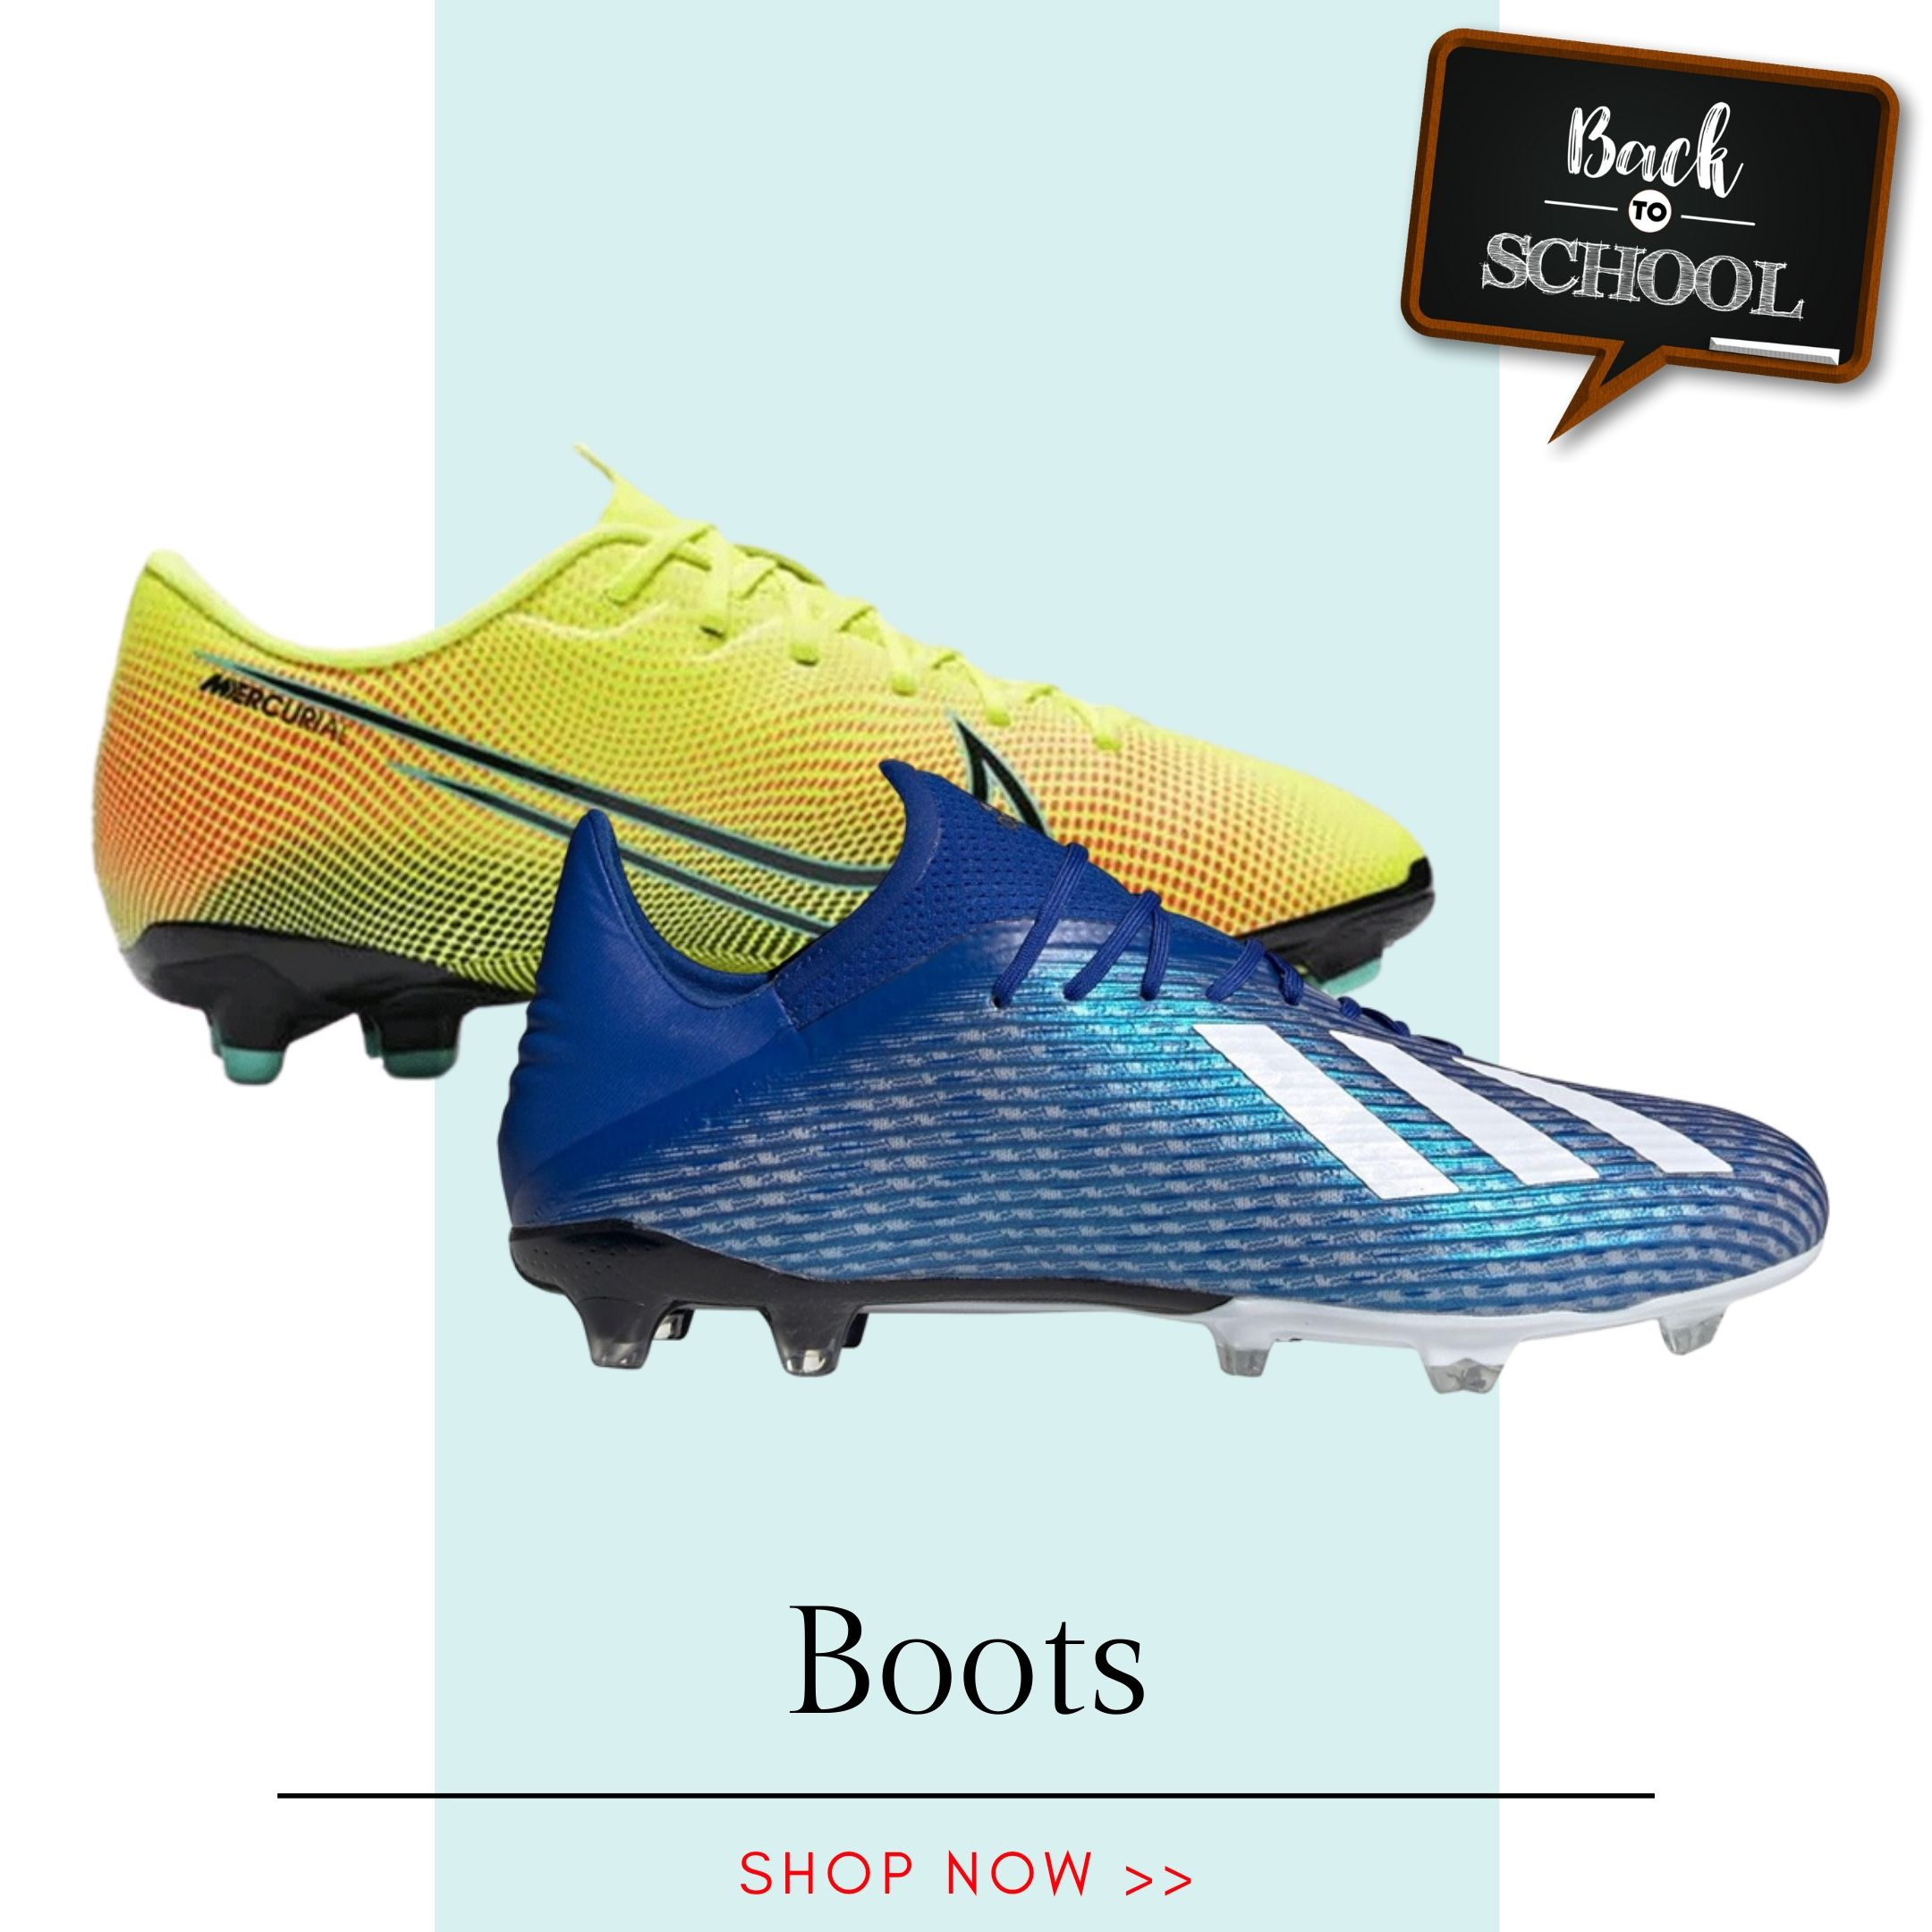 Back to School - Football Boots